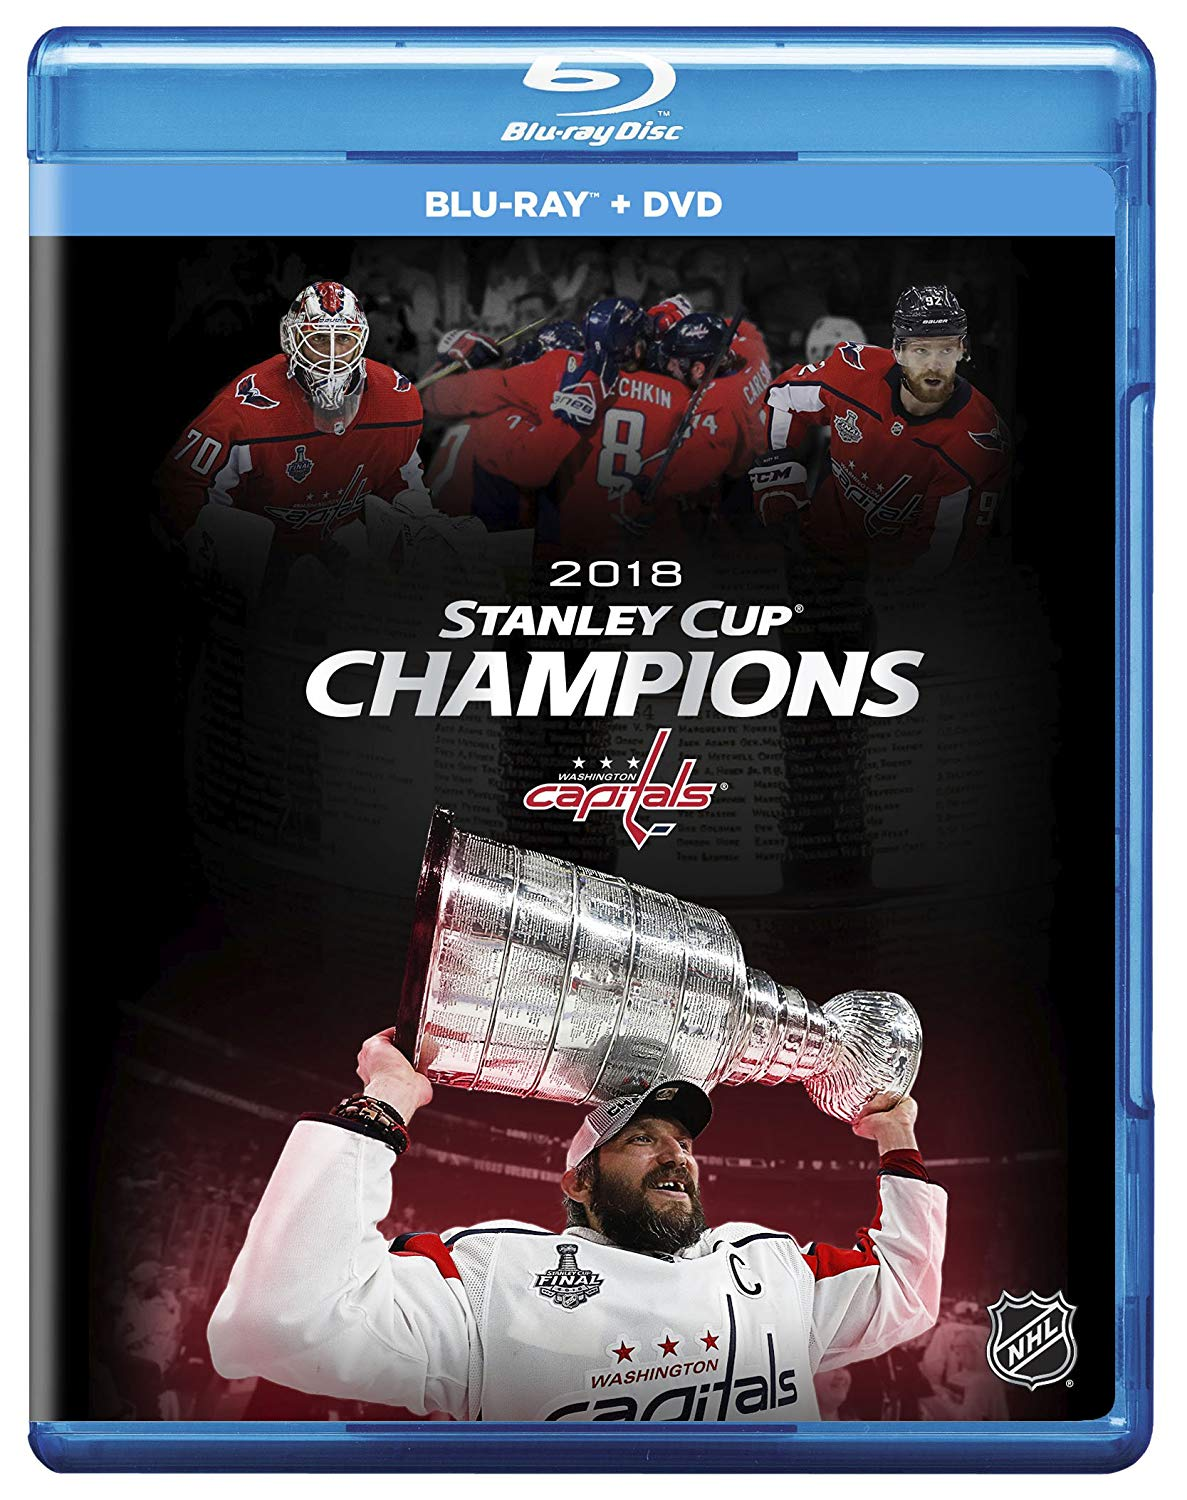 - Washington Capitals 2018 Stanley Cup Champions